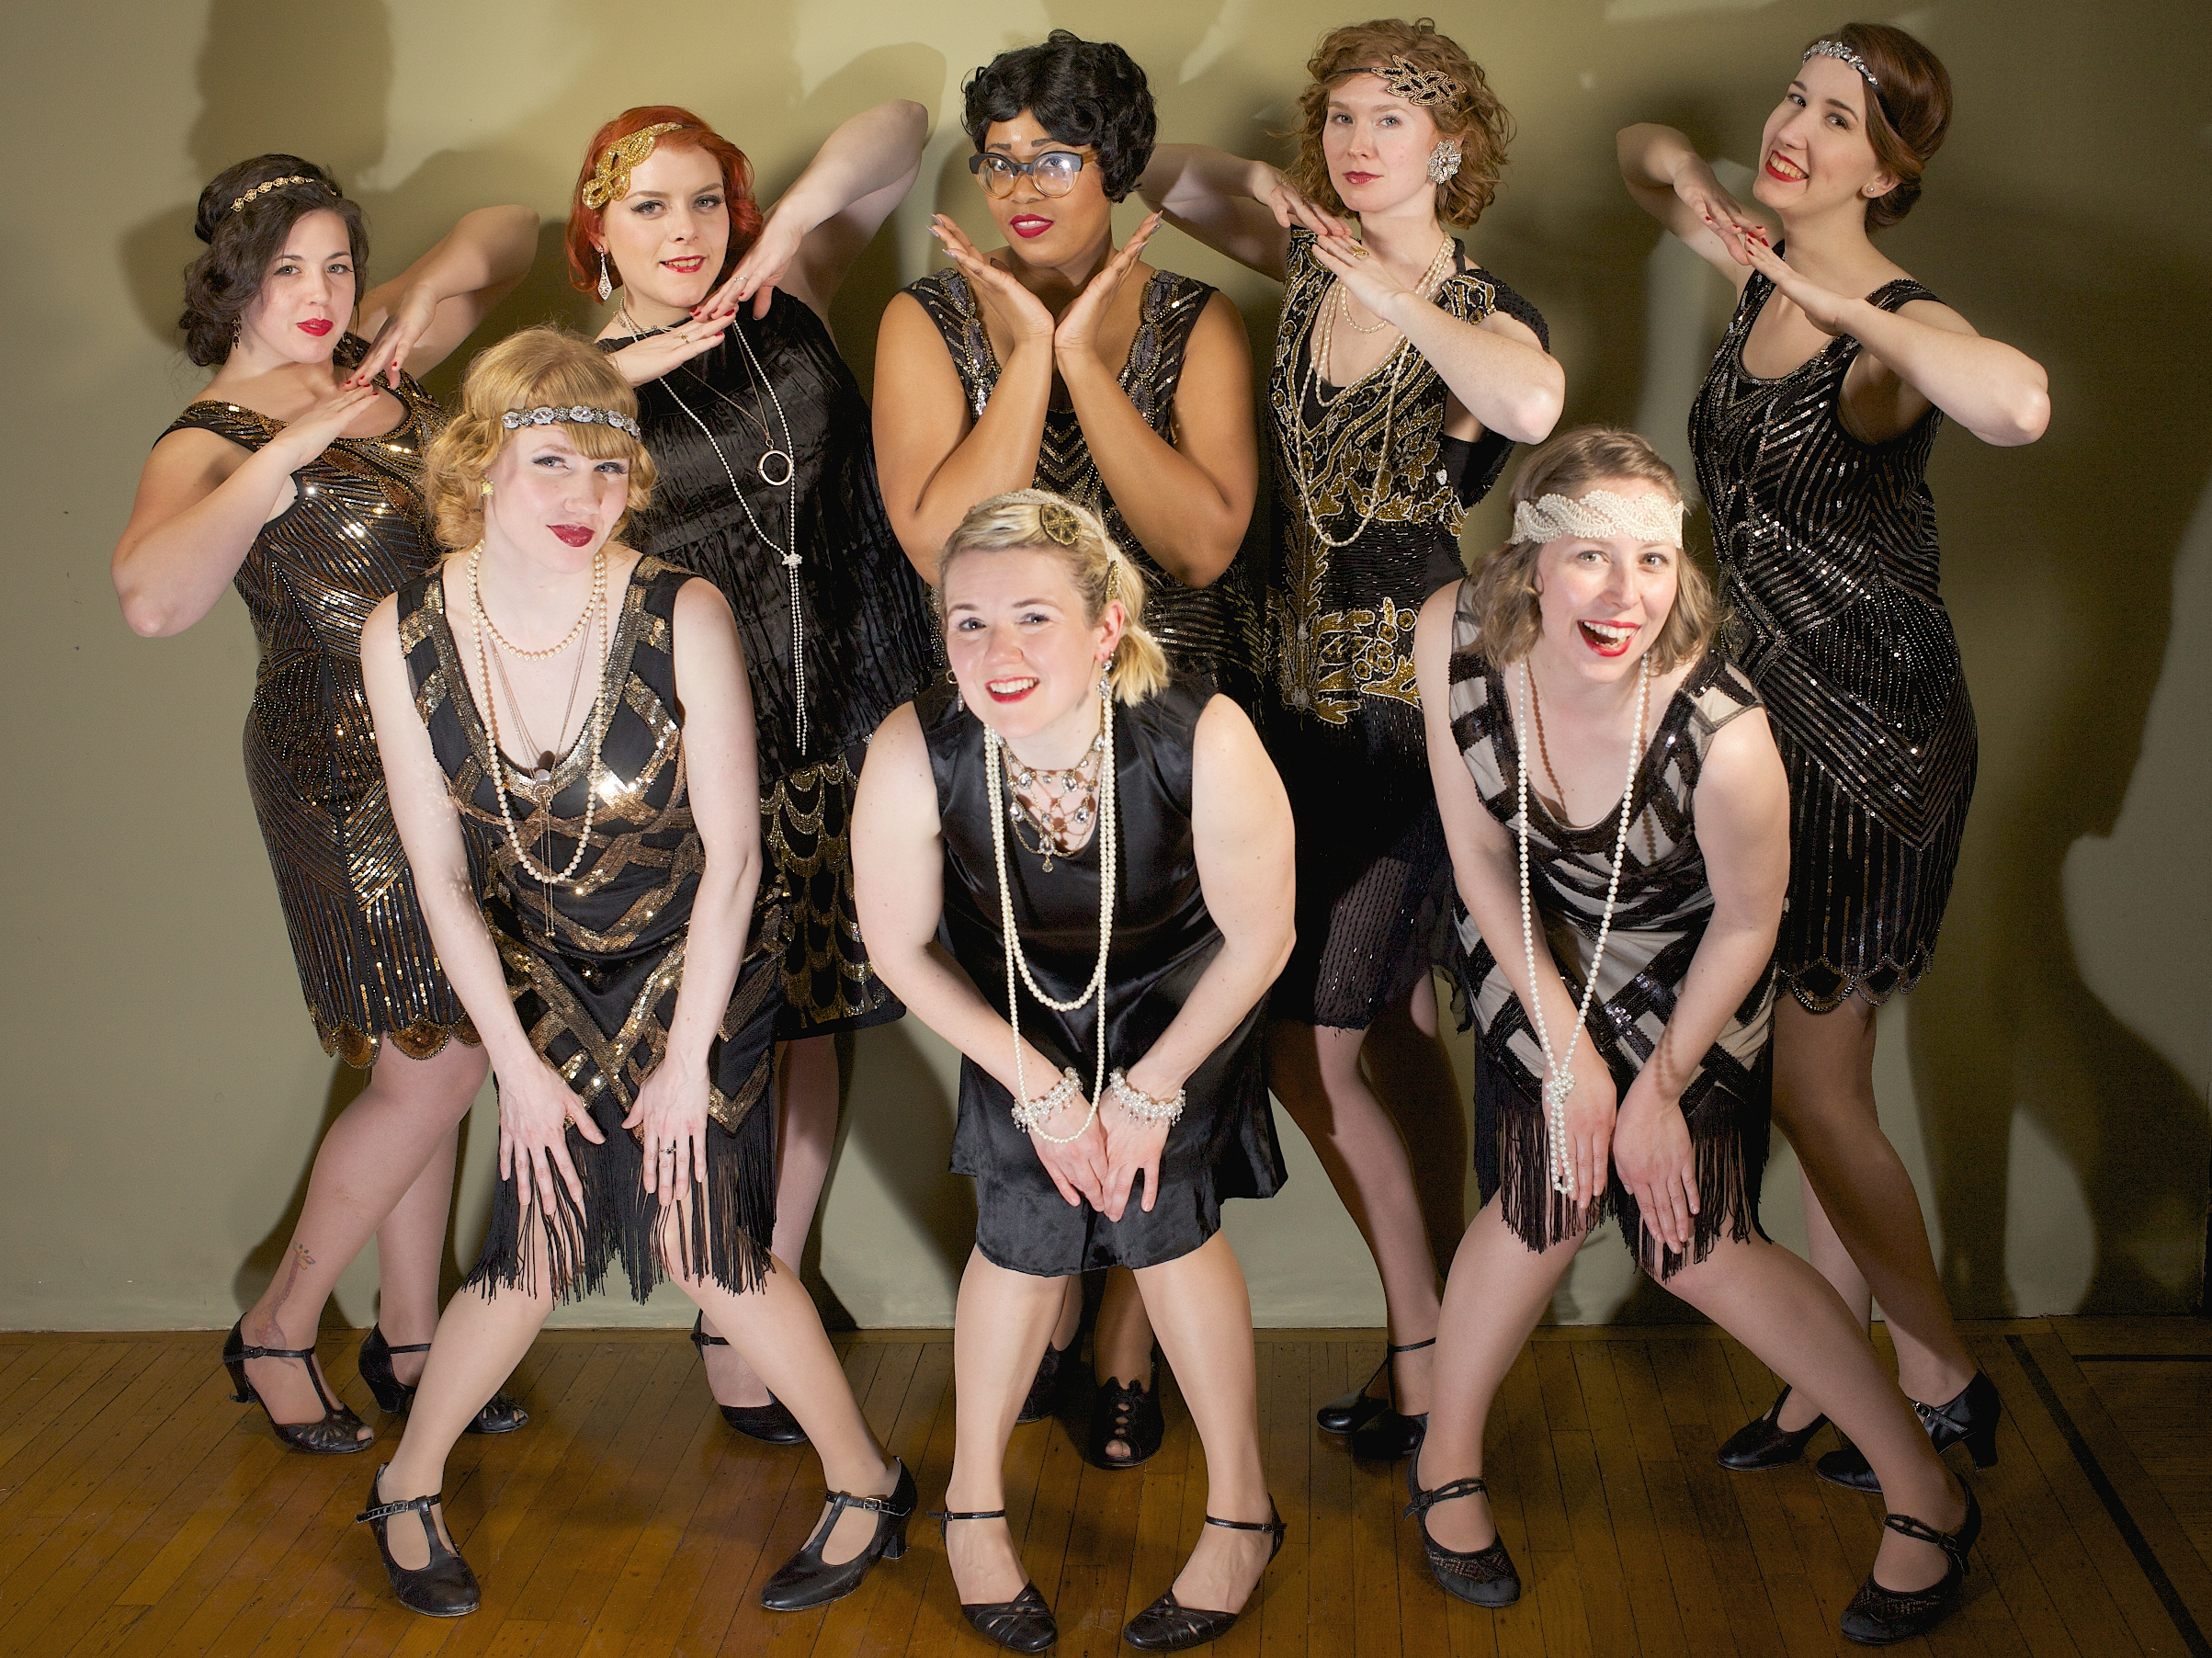 night_flappers_300dpi 4 of 20.jpg